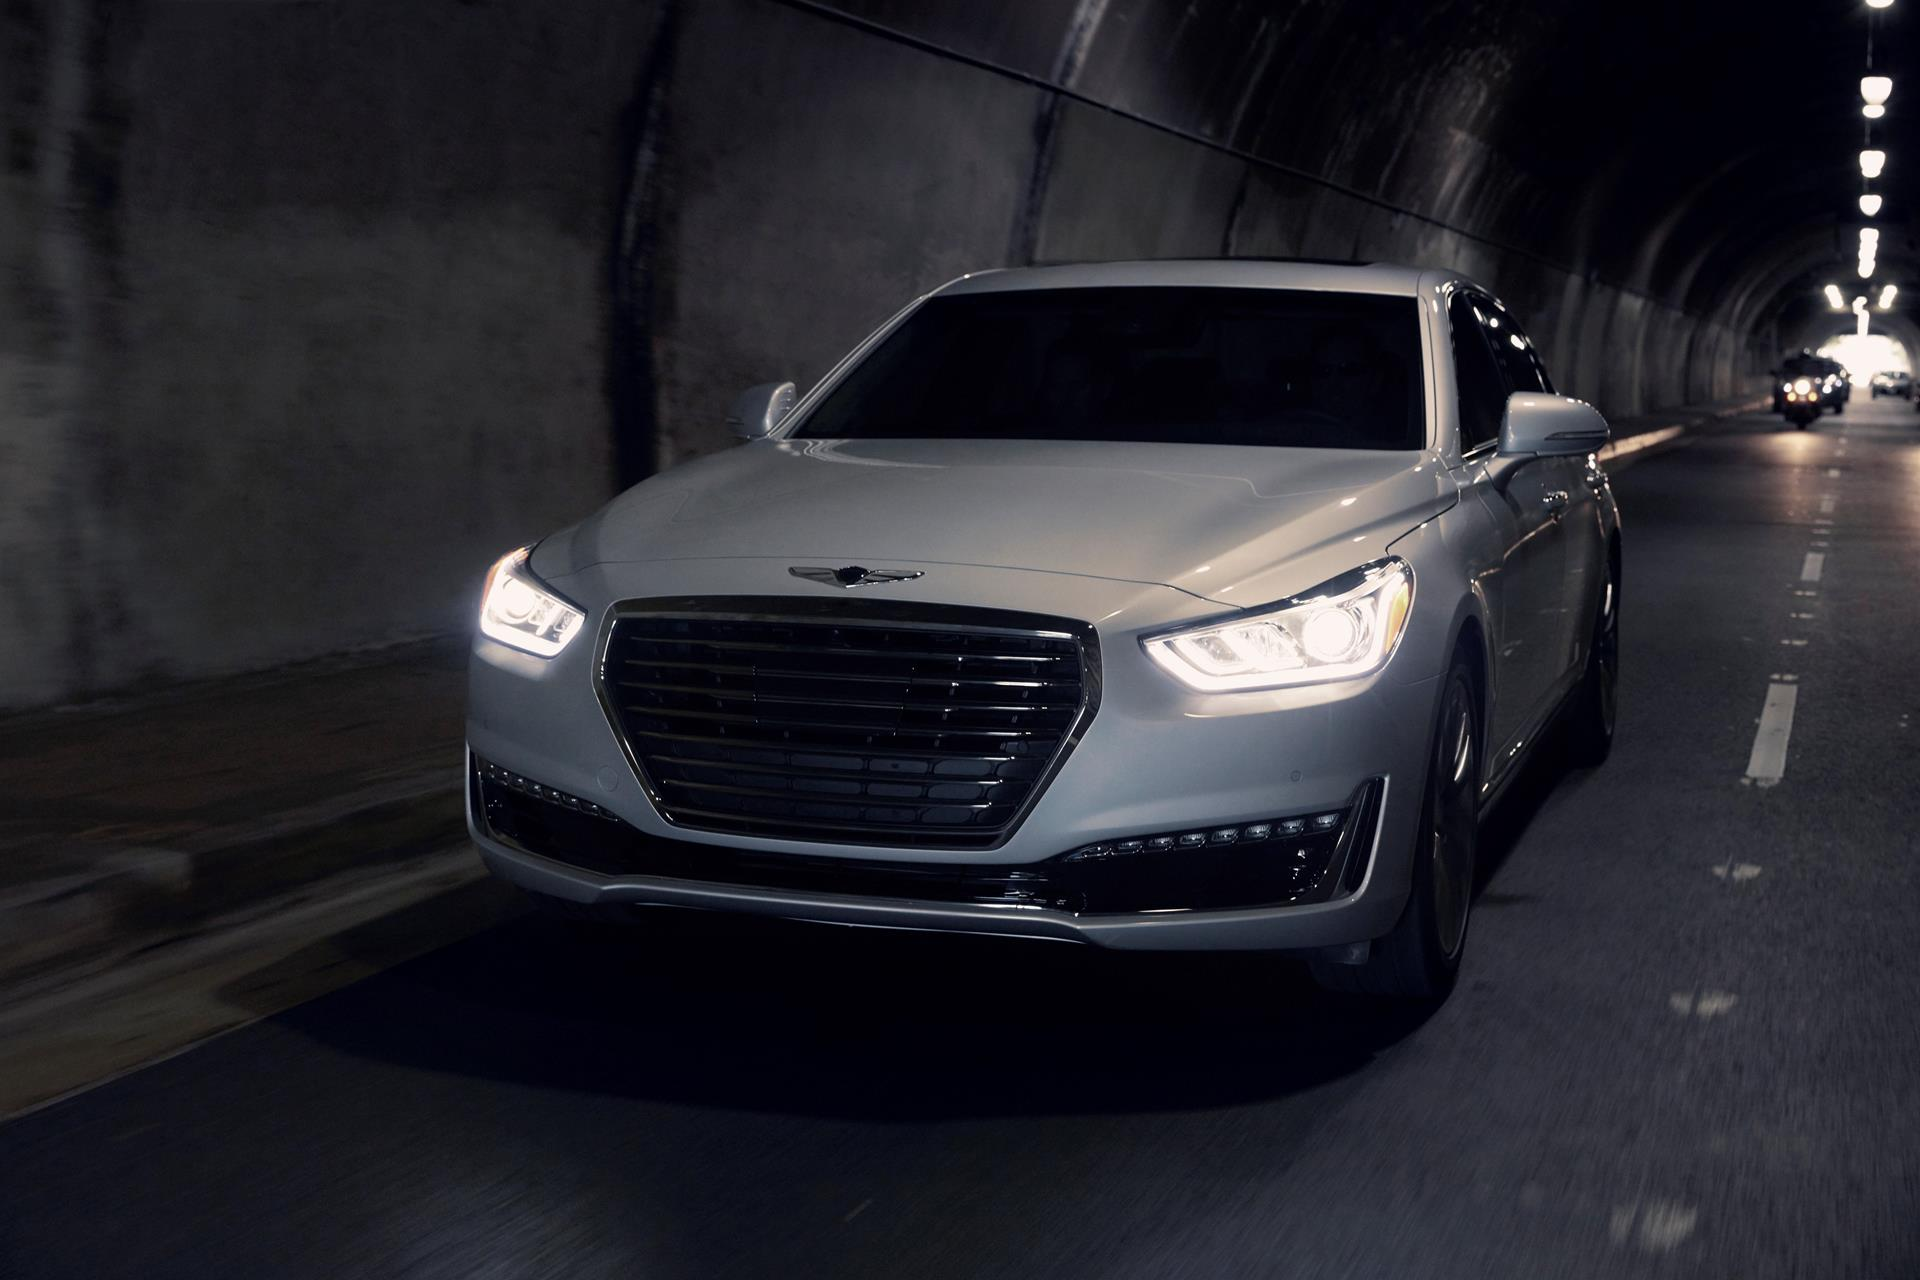 2017 Hyundai Genesis G90 News And Information